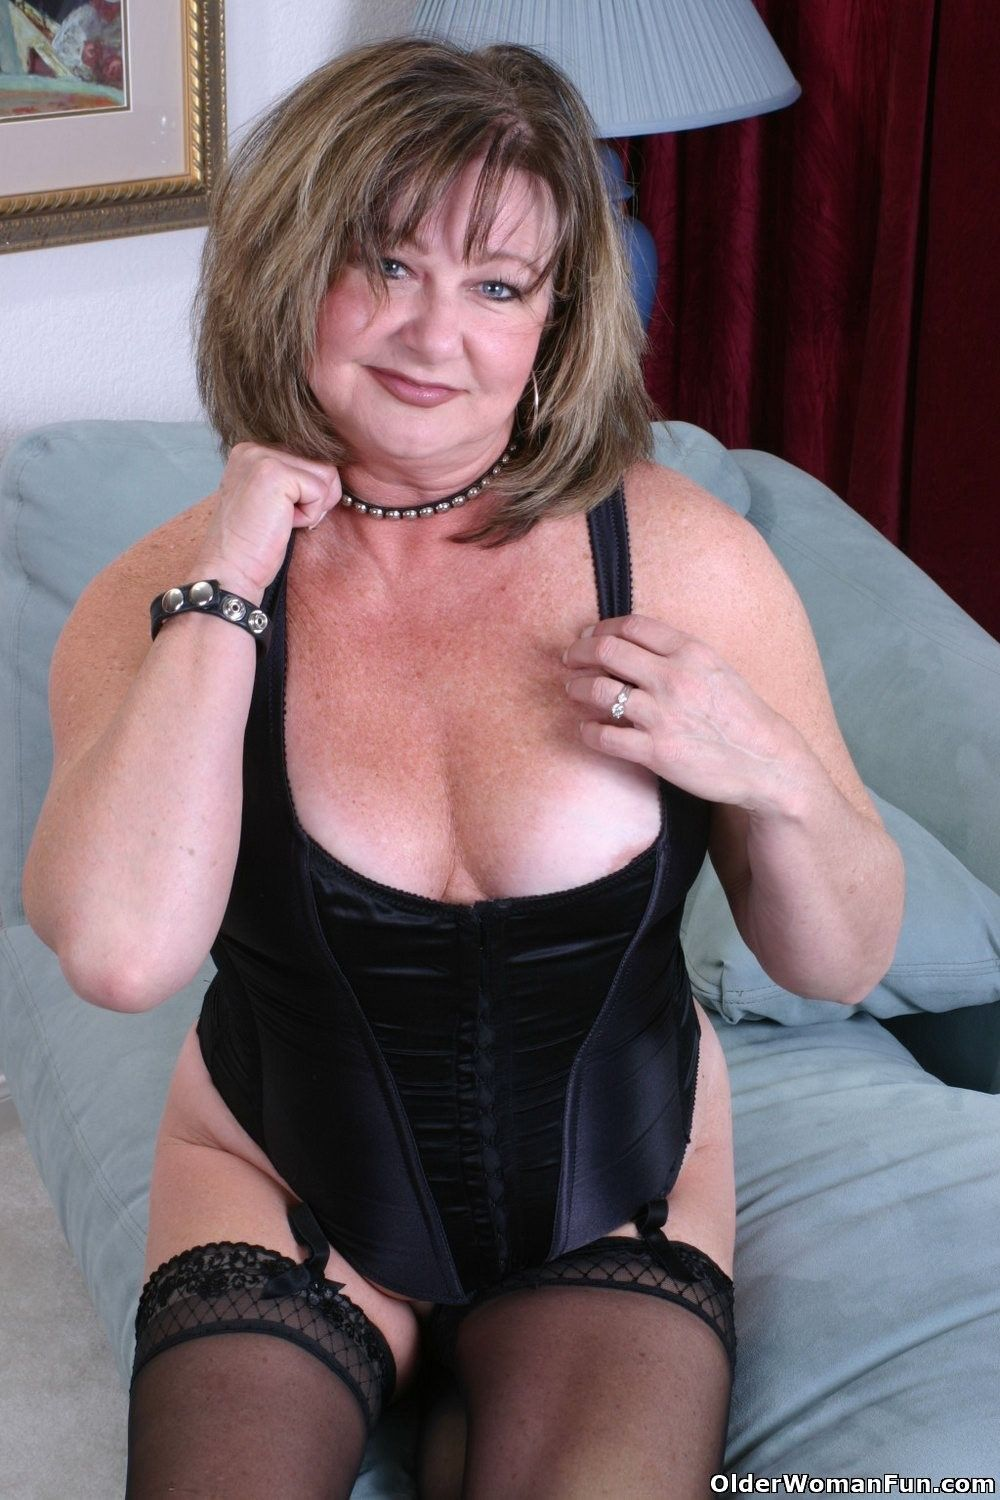 Milf gilly from the uk teases us with her big tits - 2 part 7